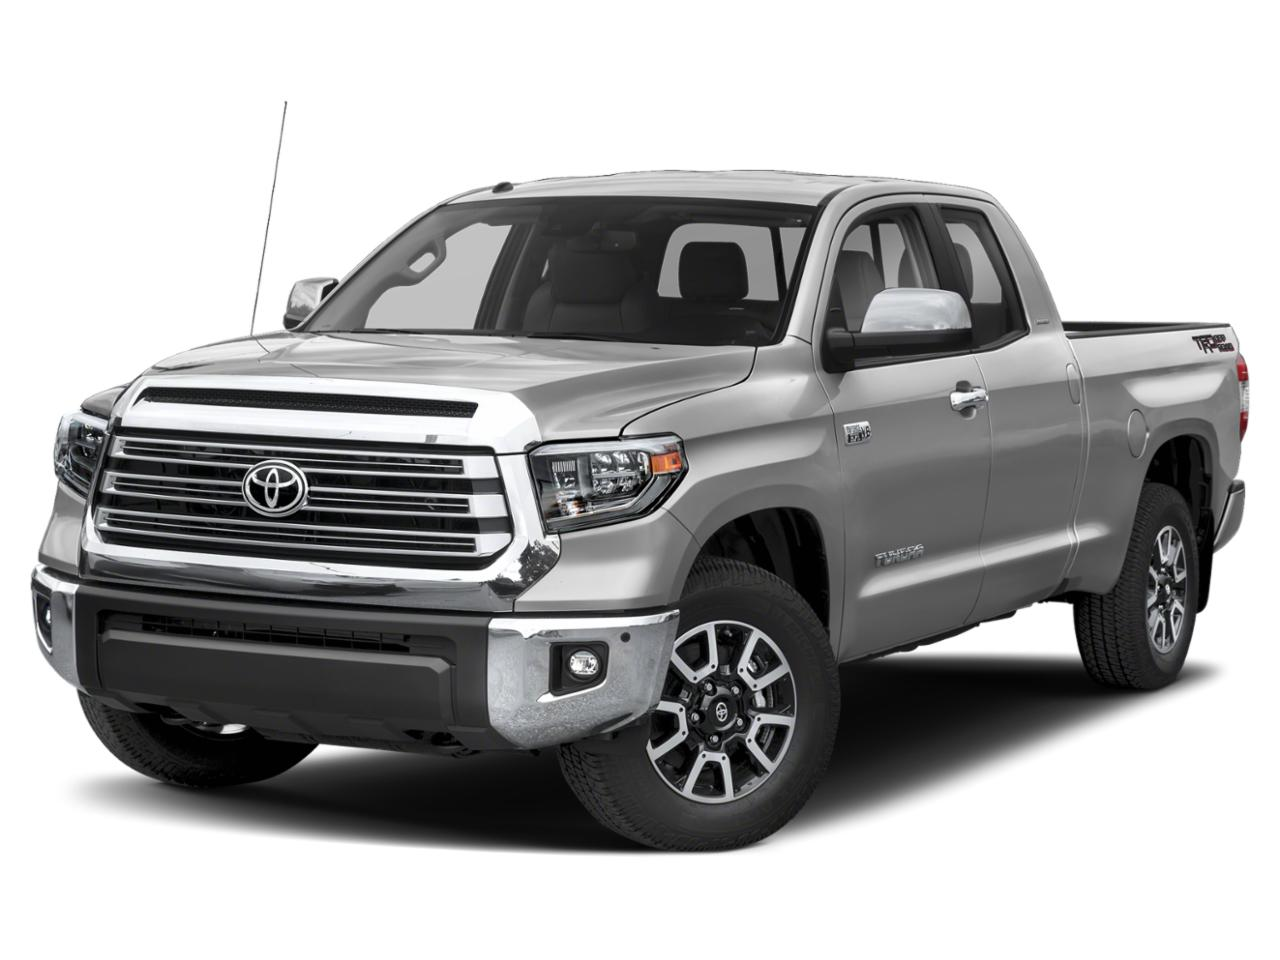 2019 Toyota Tundra 4WD Vehicle Photo in TERRYVILLE, CT 06786-5904